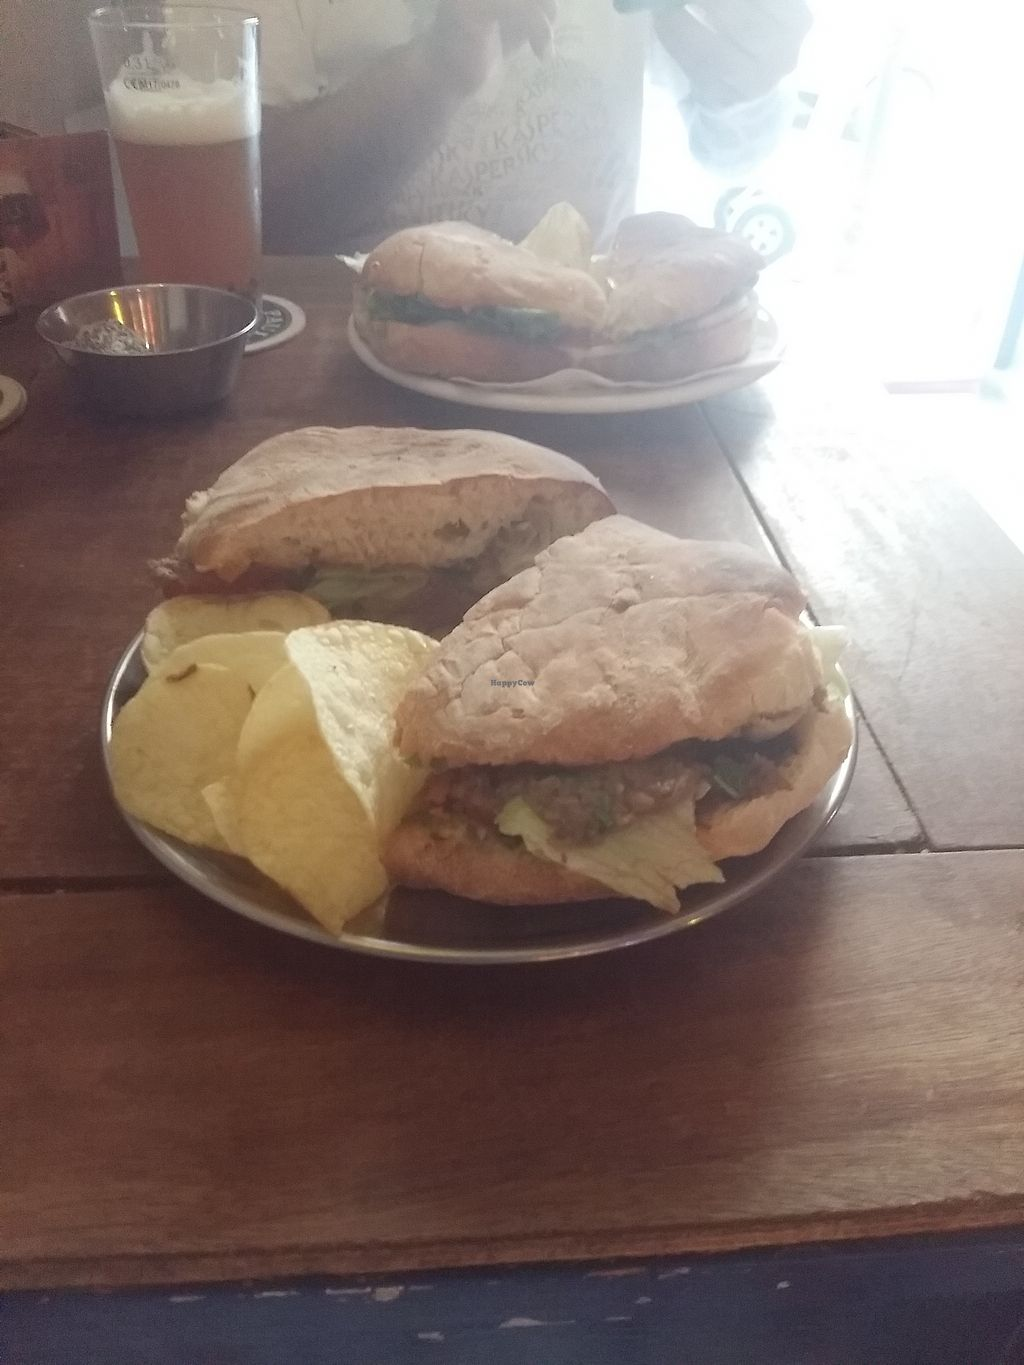 """Photo of Gugar  by <a href=""""/members/profile/ninaframbuesa"""">ninaframbuesa</a> <br/>They always brought the ftira with chips <br/> August 5, 2017  - <a href='/contact/abuse/image/56406/289167'>Report</a>"""